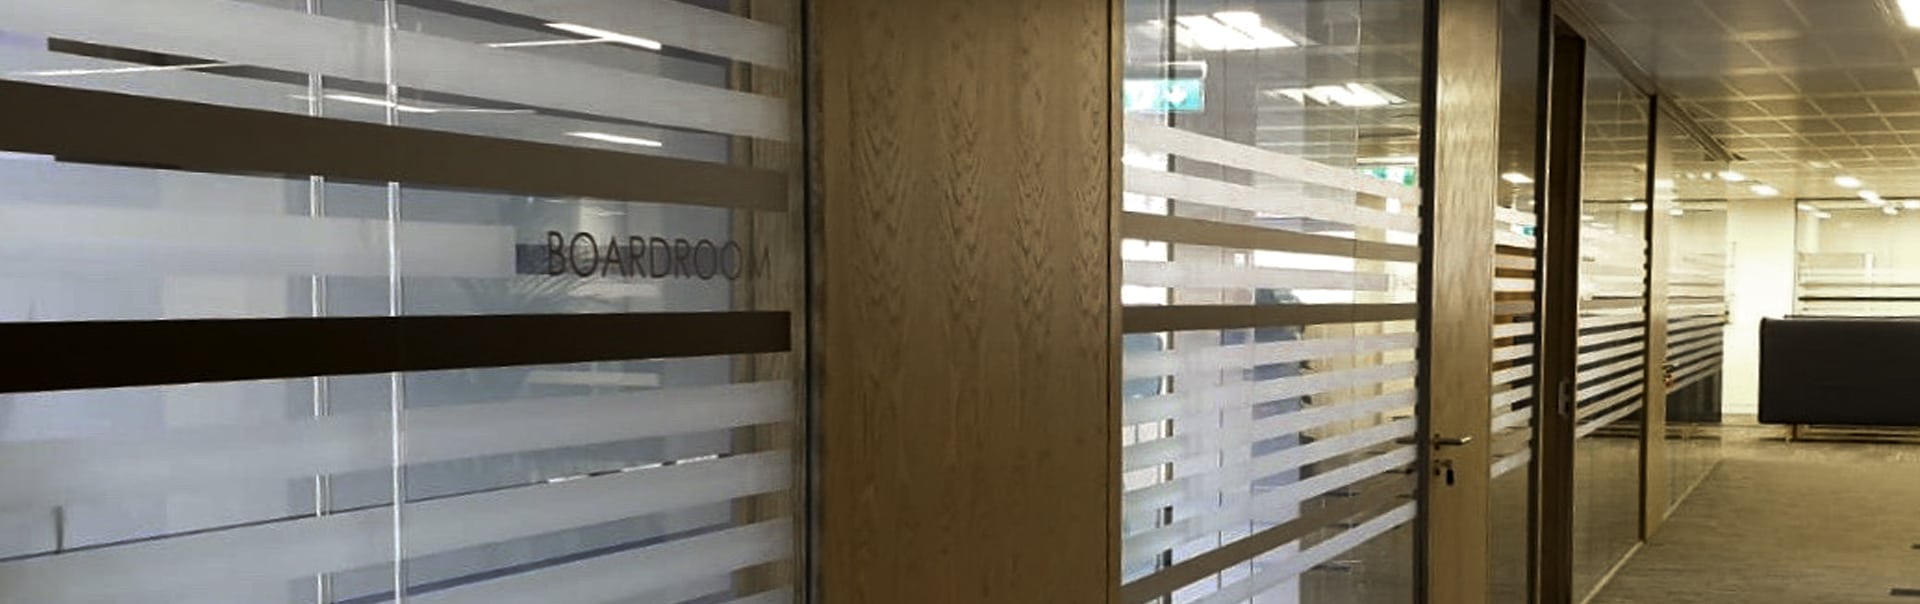 Cut Vinyl | Horizon Glass Stripe Design